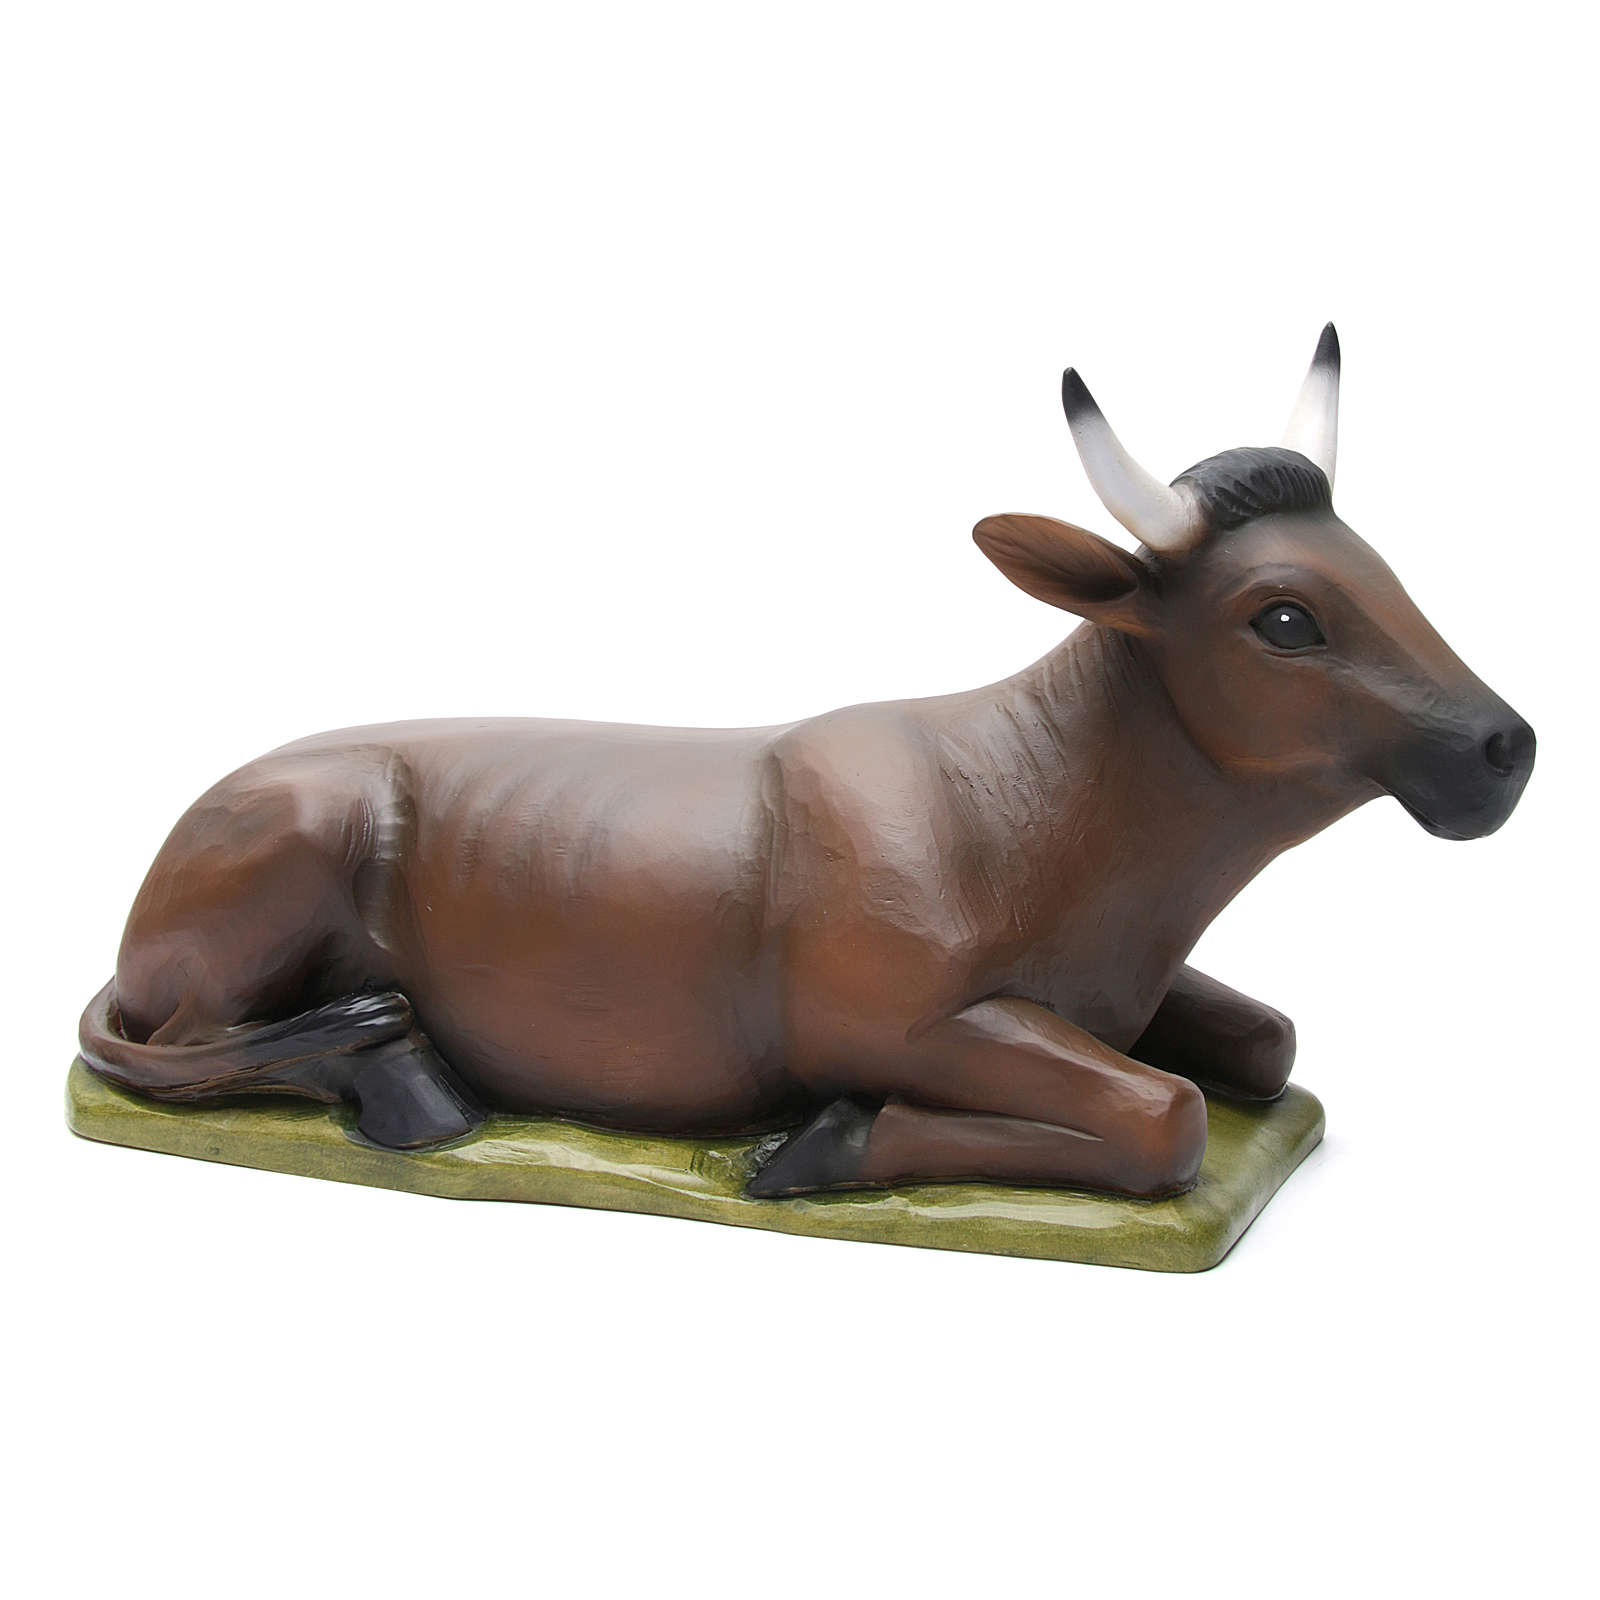 Ox and donkey, statues in painted fiberglass, 80cm 4